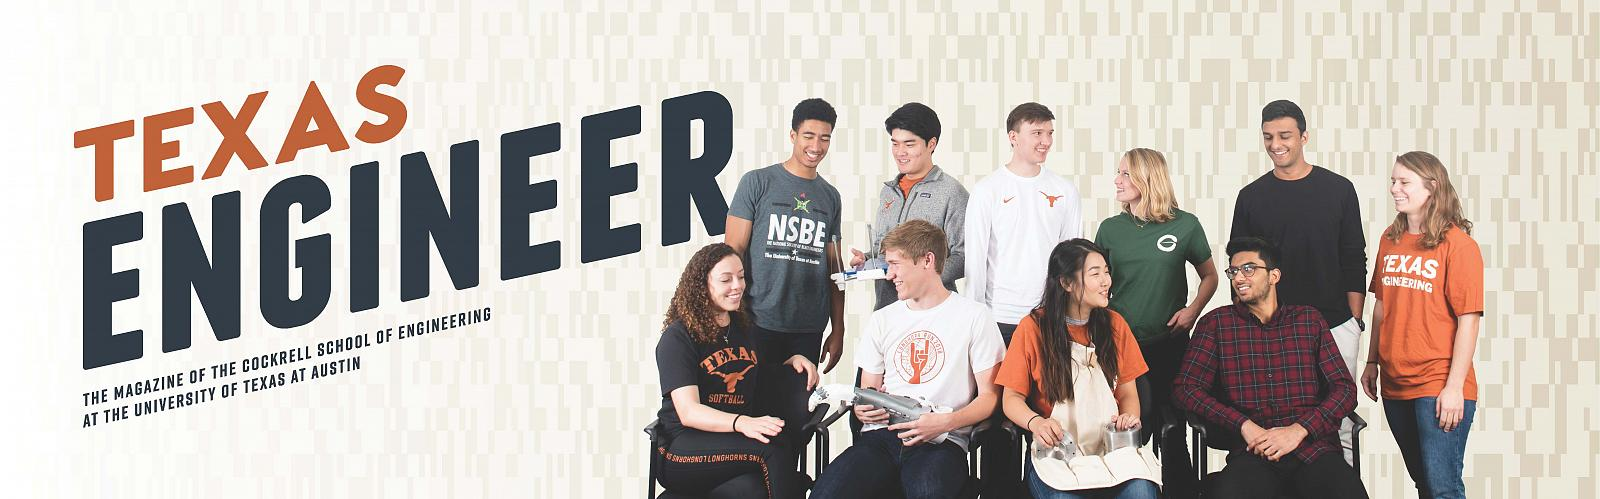 cover of Texas Engineering magazine with group of students